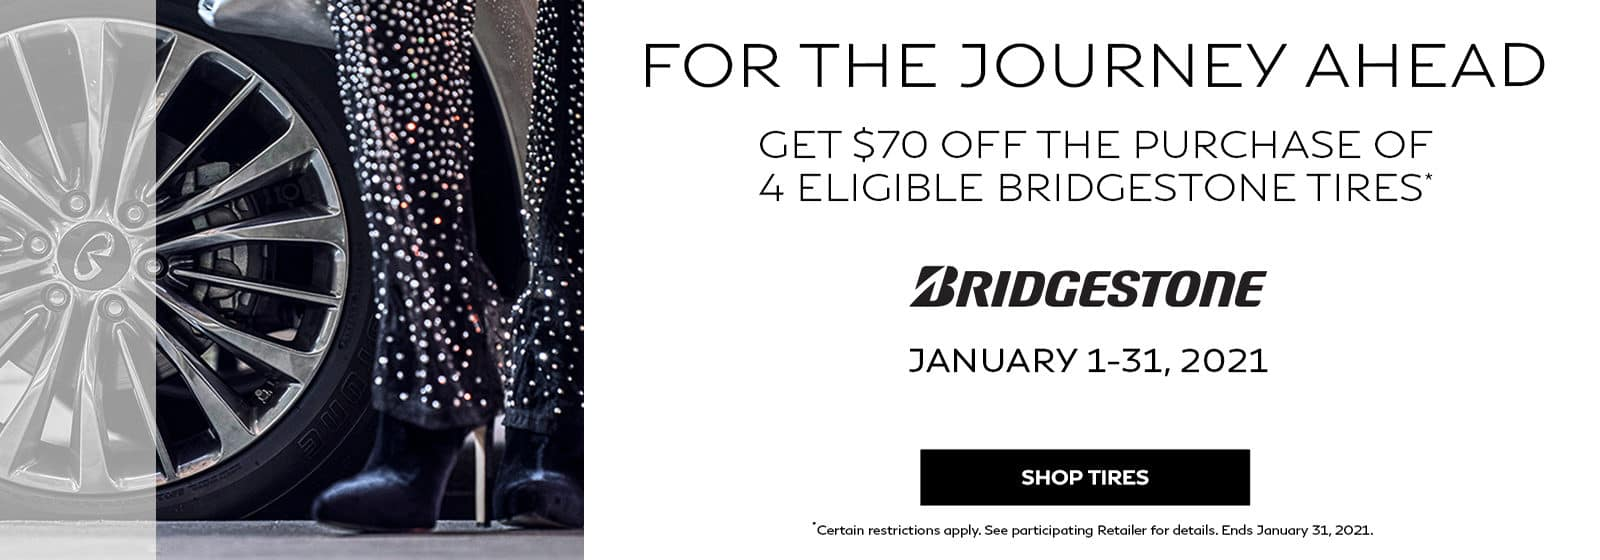 Get $70 off the purchase of 4 eligible tires